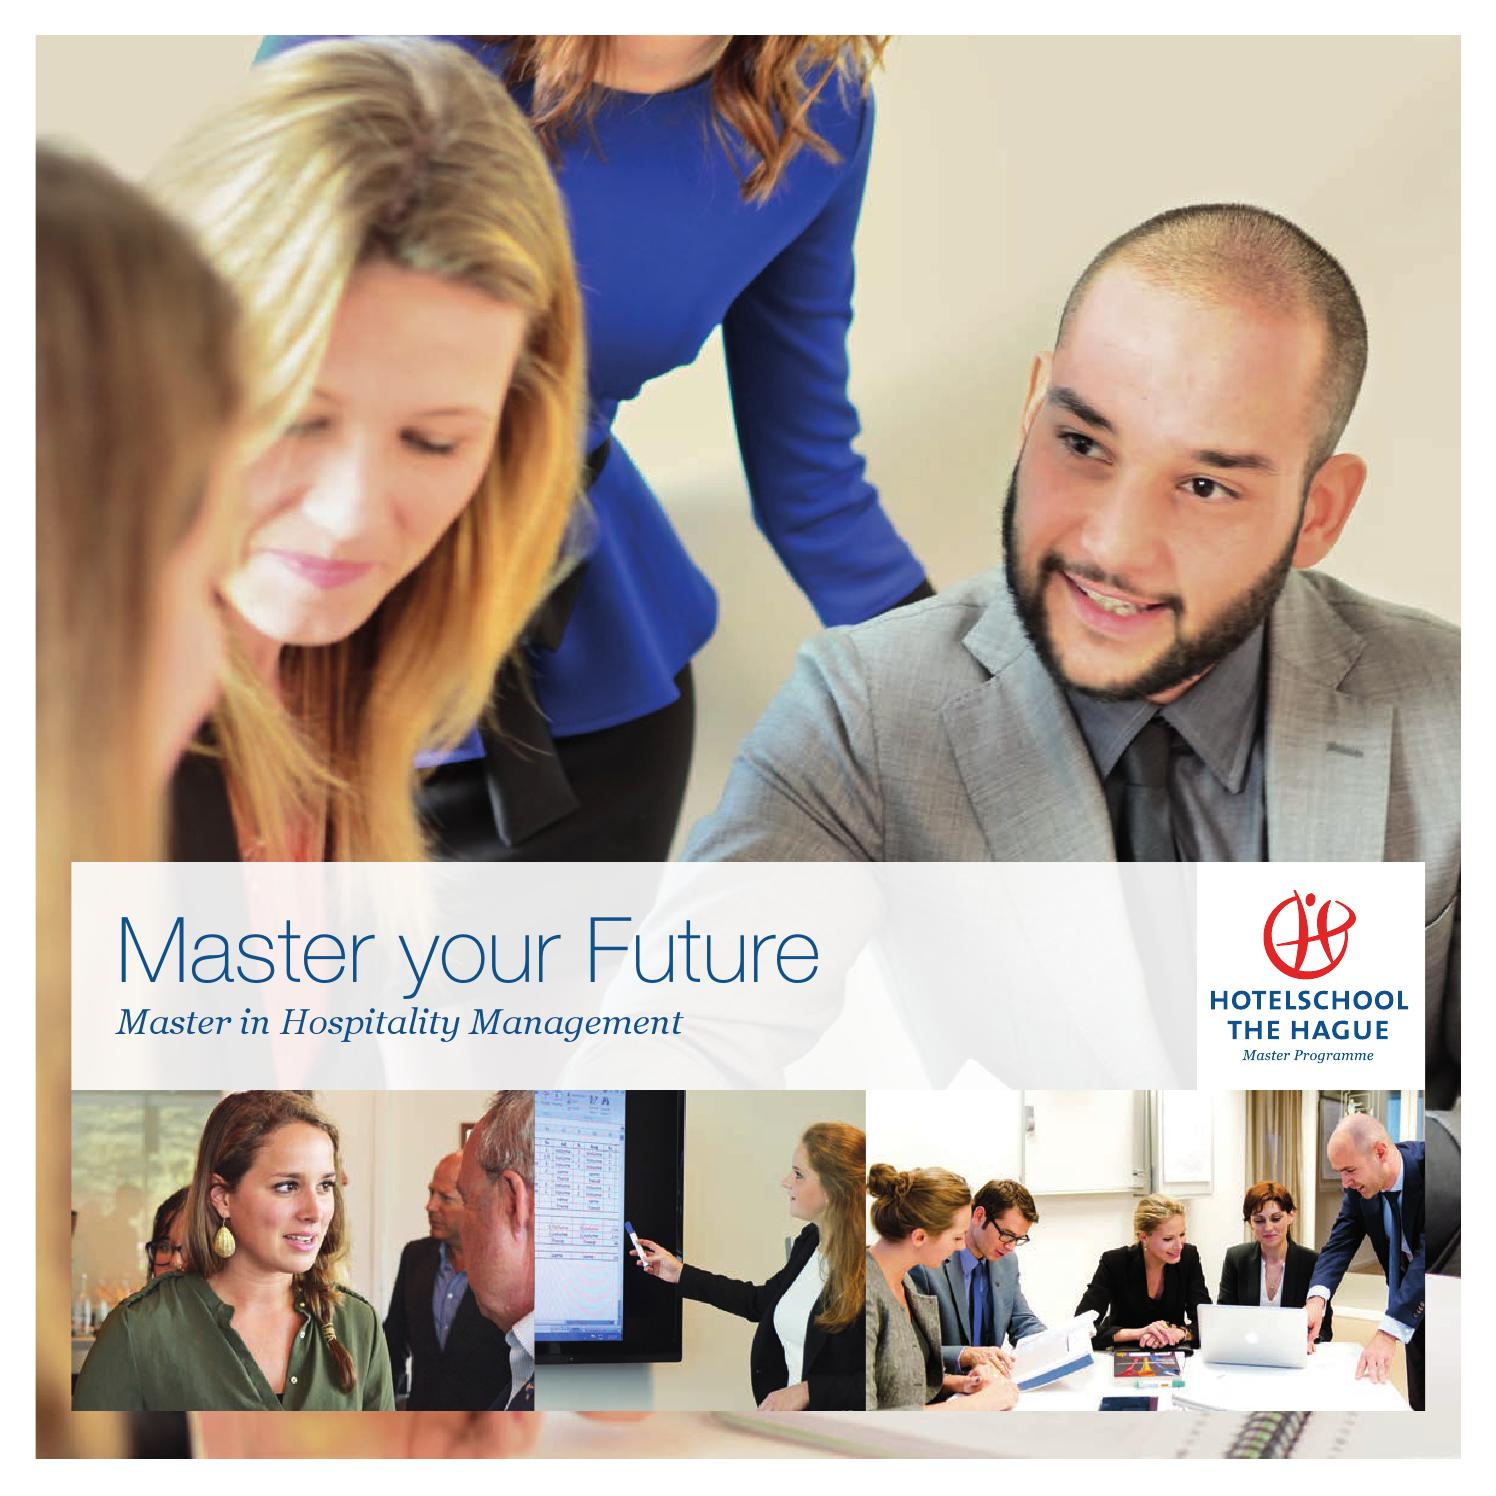 Hotelschool The Hague Master Brochure 2015 By Hotelschool The Hague Issuu